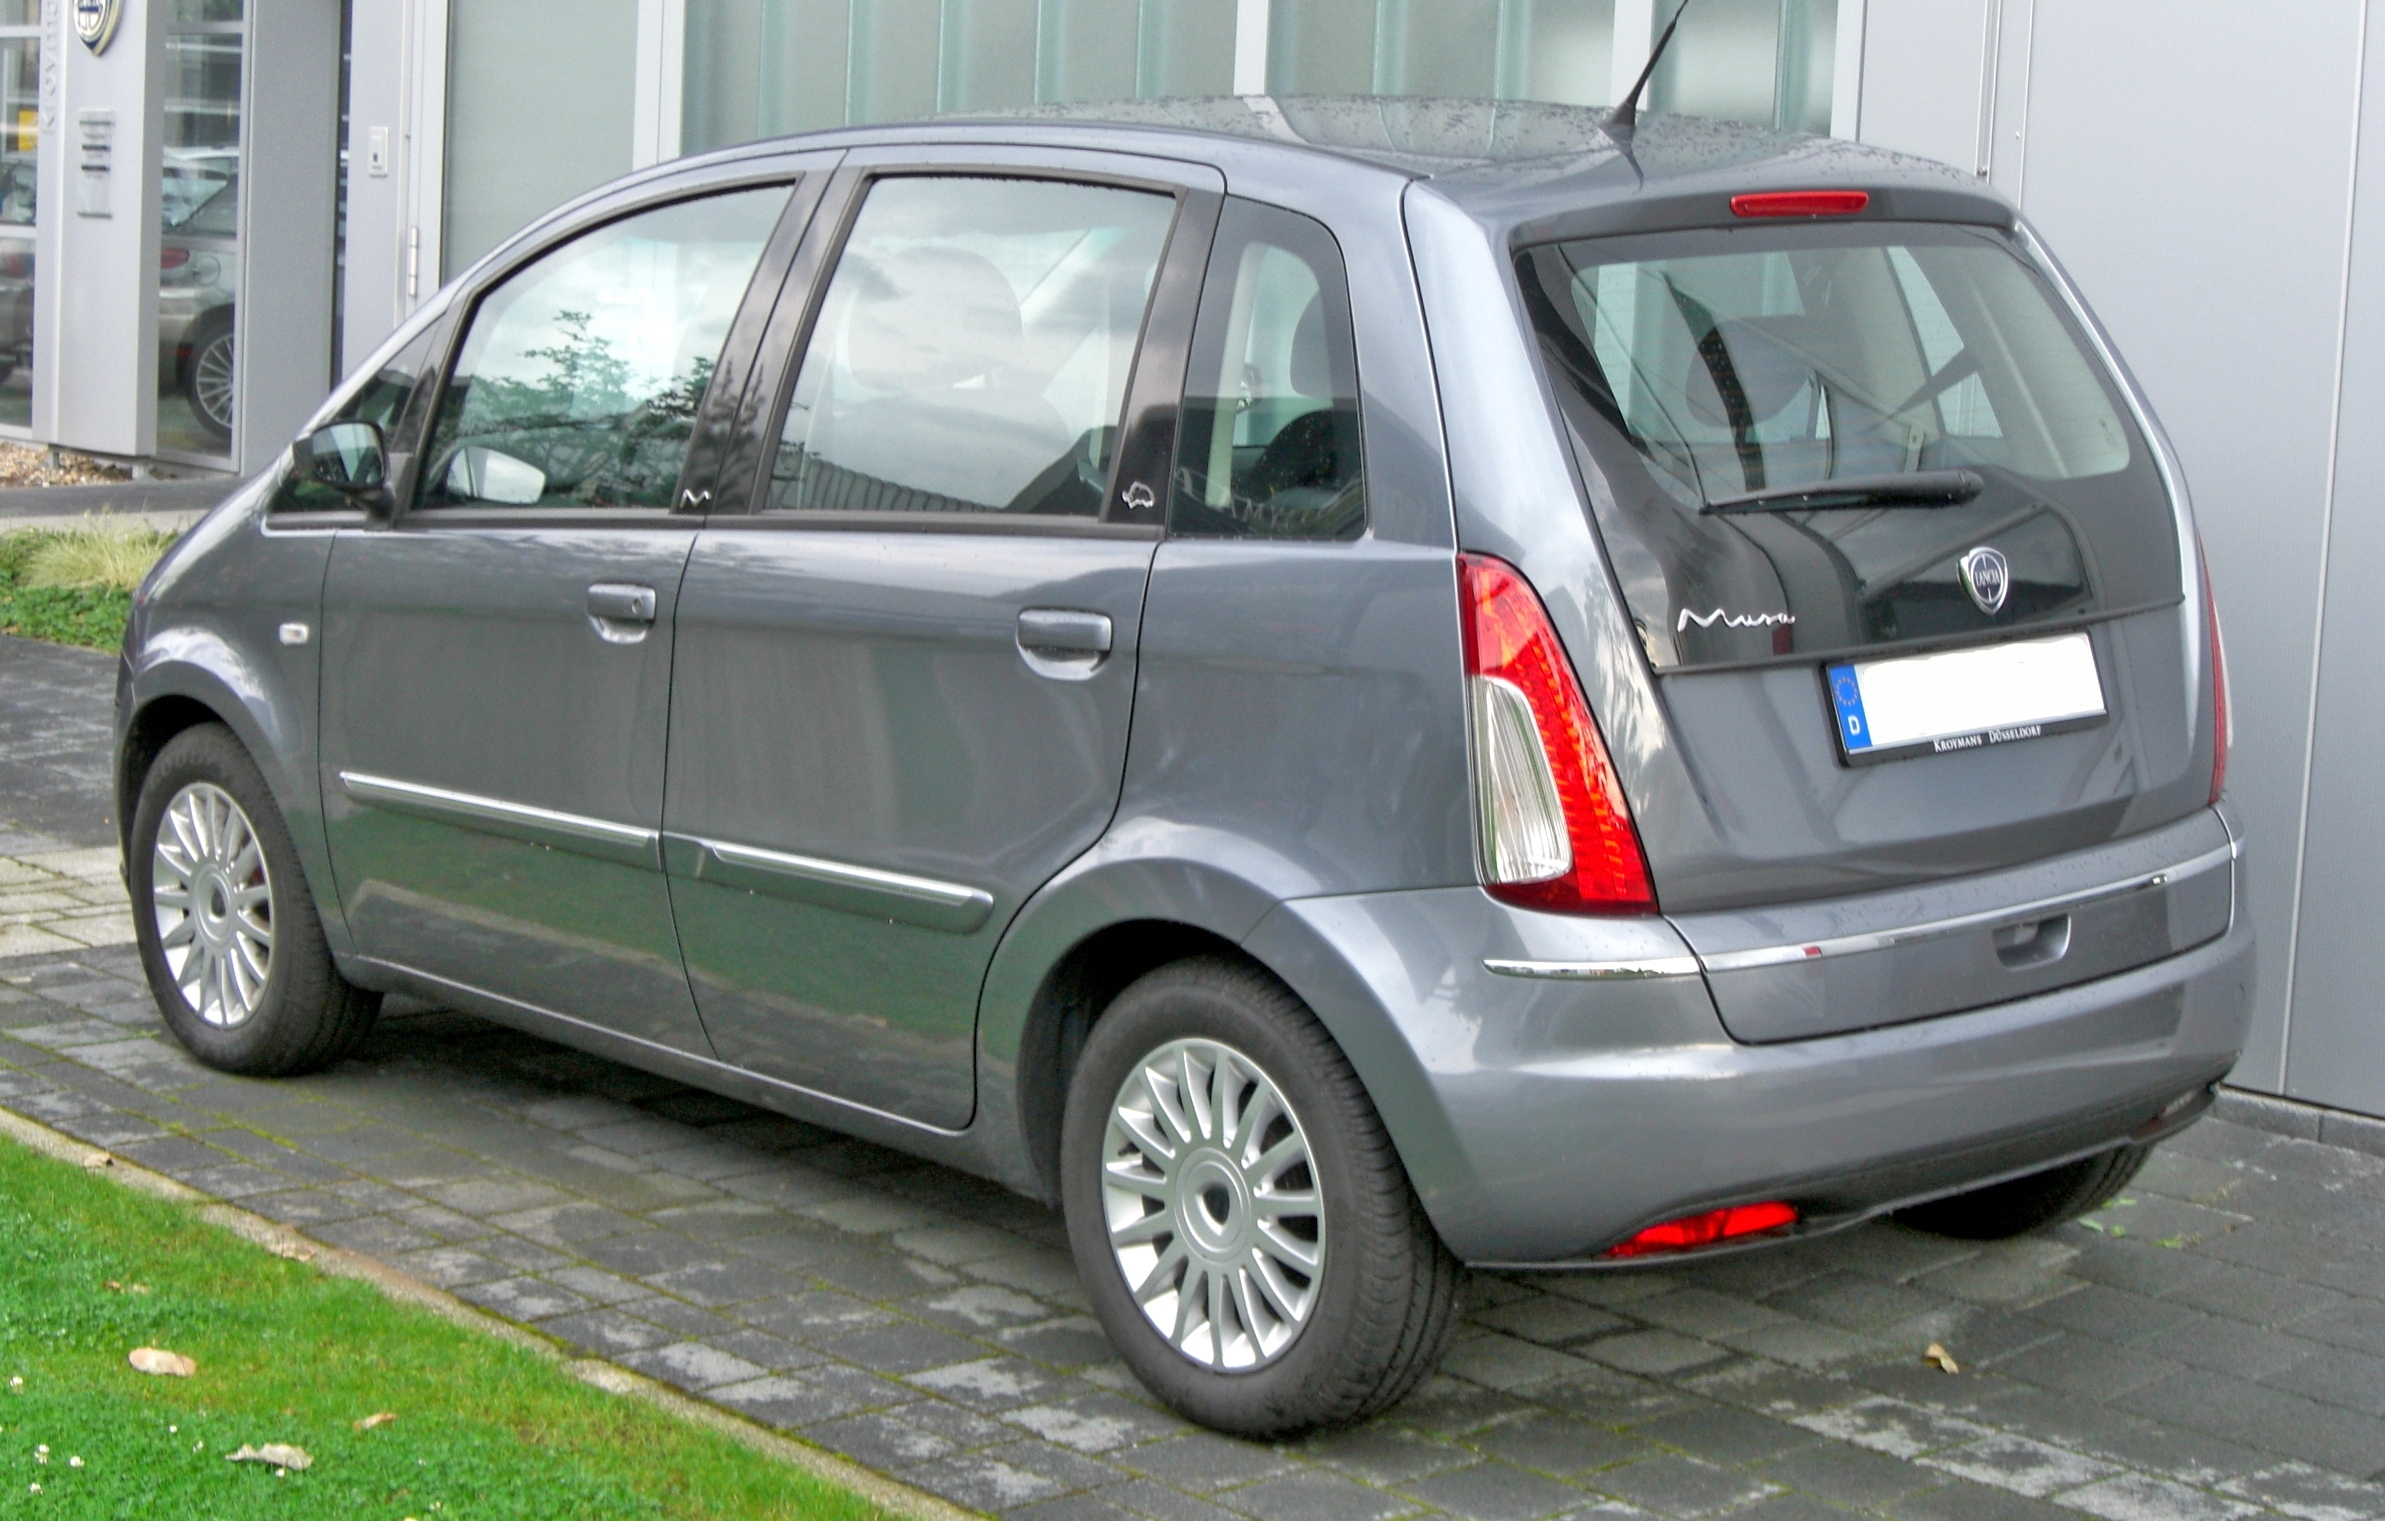 https://upload.wikimedia.org/wikipedia/commons/4/4a/Lancia_Musa_Facelift_rear.JPG